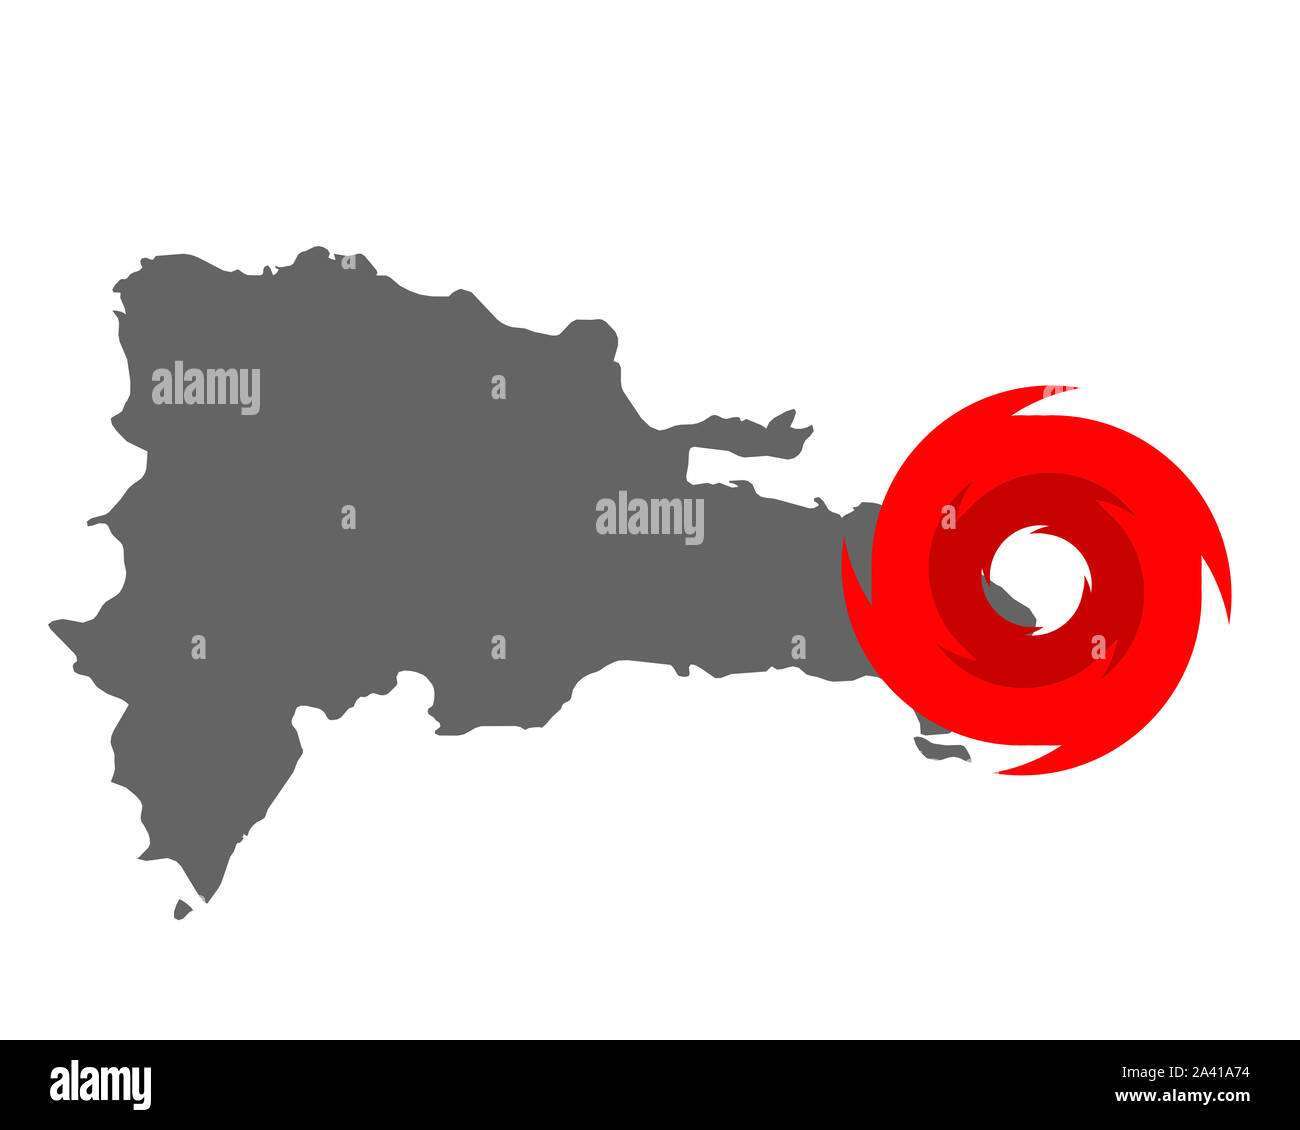 Map Of The Dominican Republic And Hurricane Symbol Stock Photo Alamy Come to pngtree download free. alamy